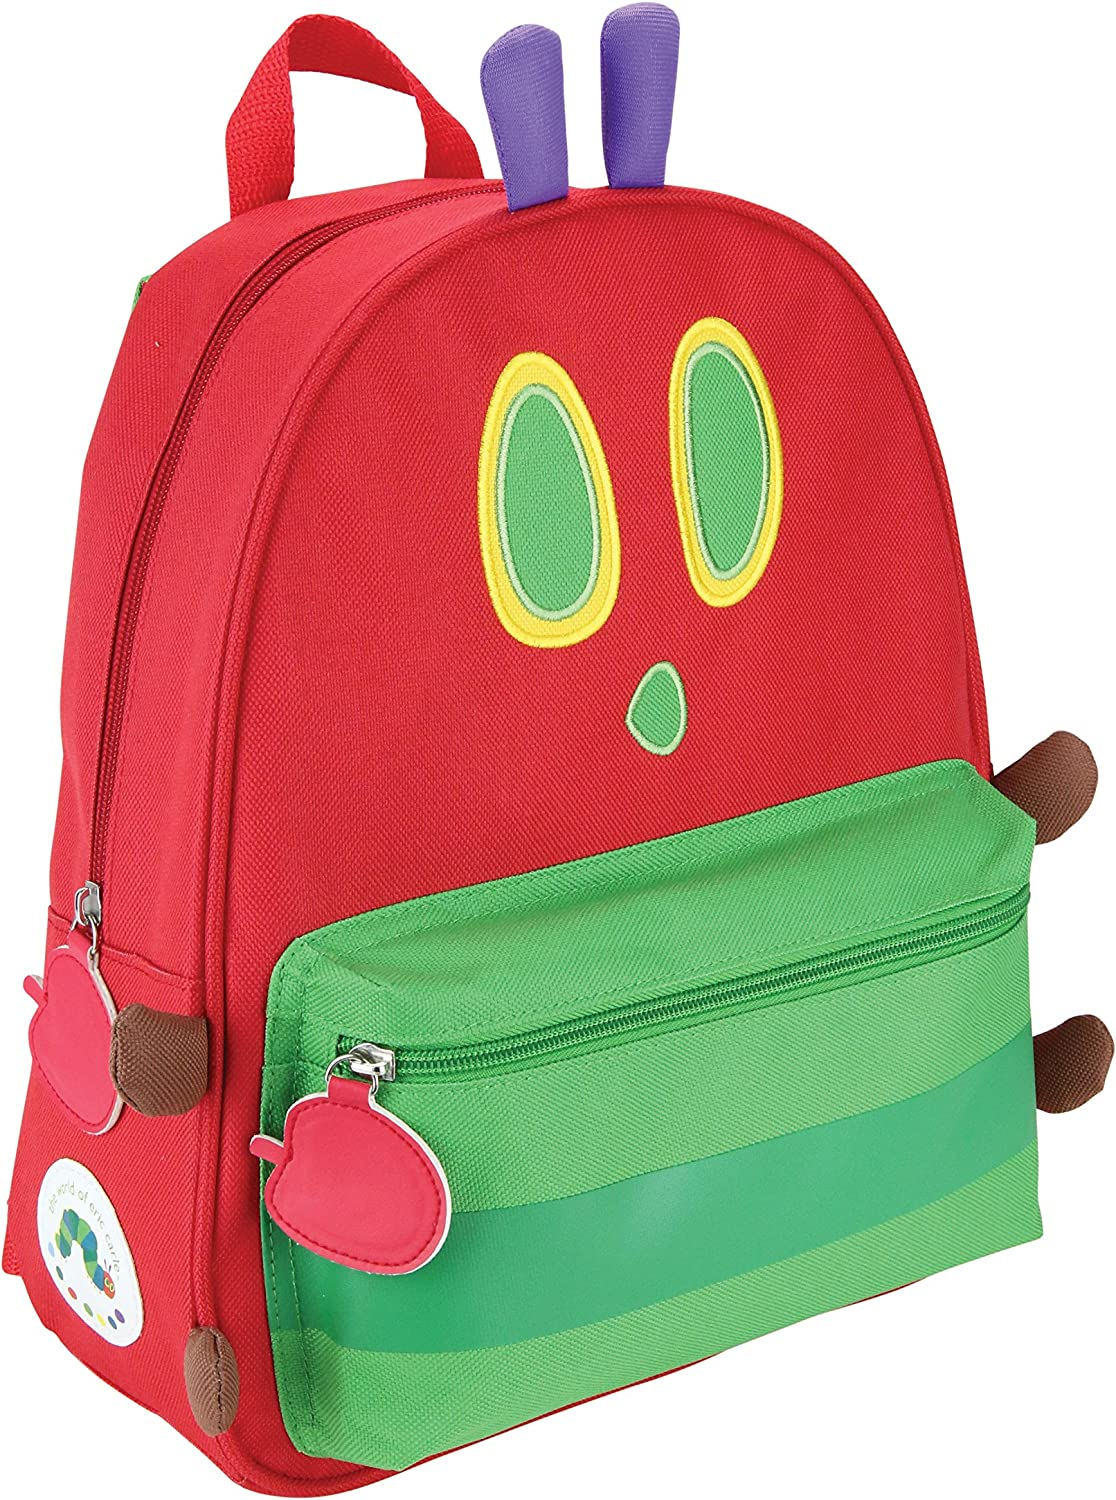 World of Eric Carle, The Very Hungry Caterpillar Backpack